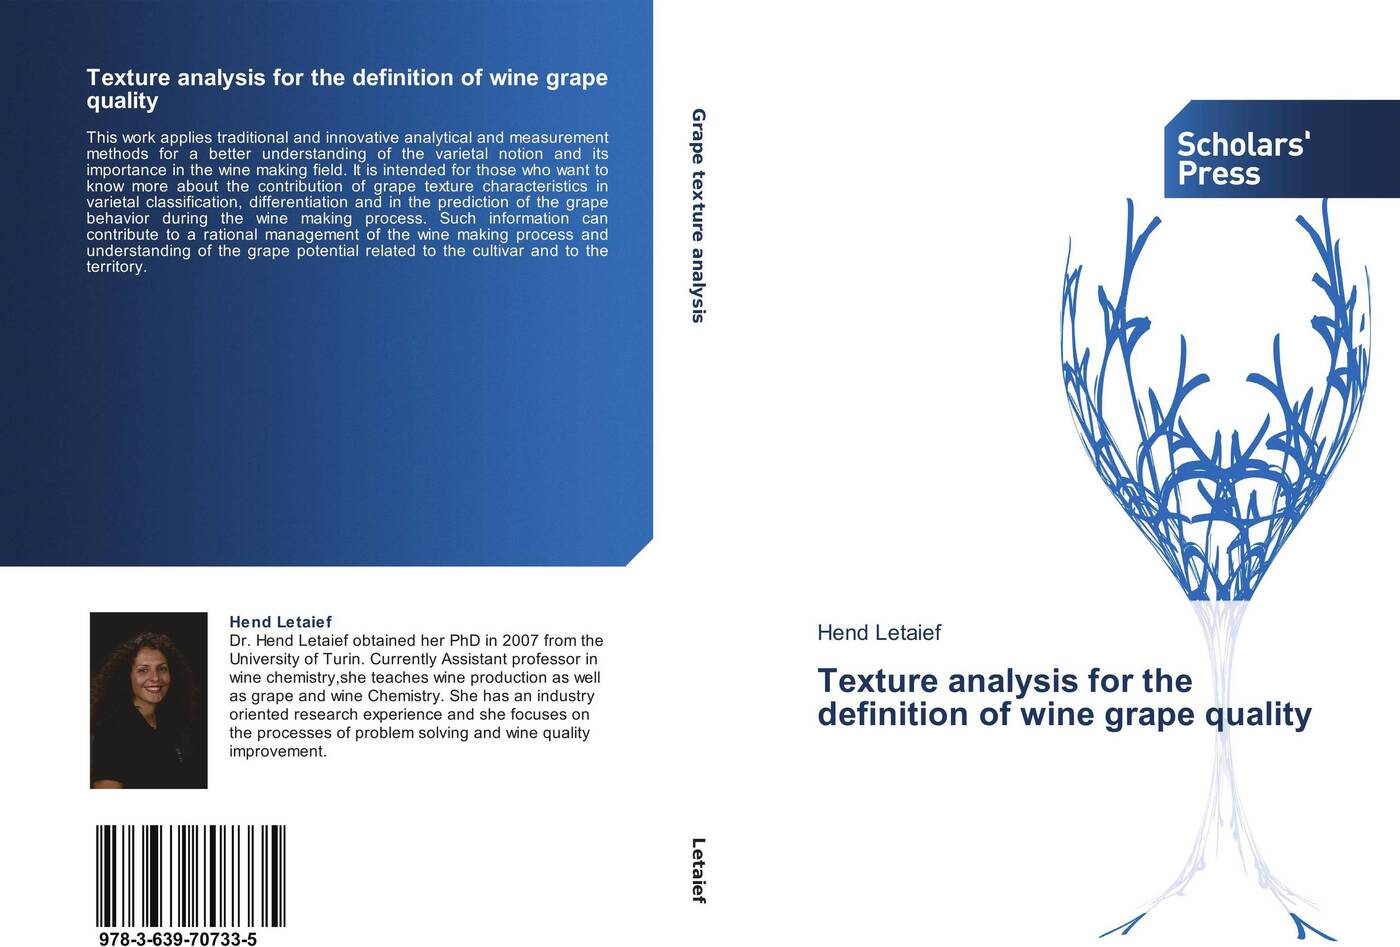 лучшая цена Hend Letaief Texture analysis for the definition of wine grape quality